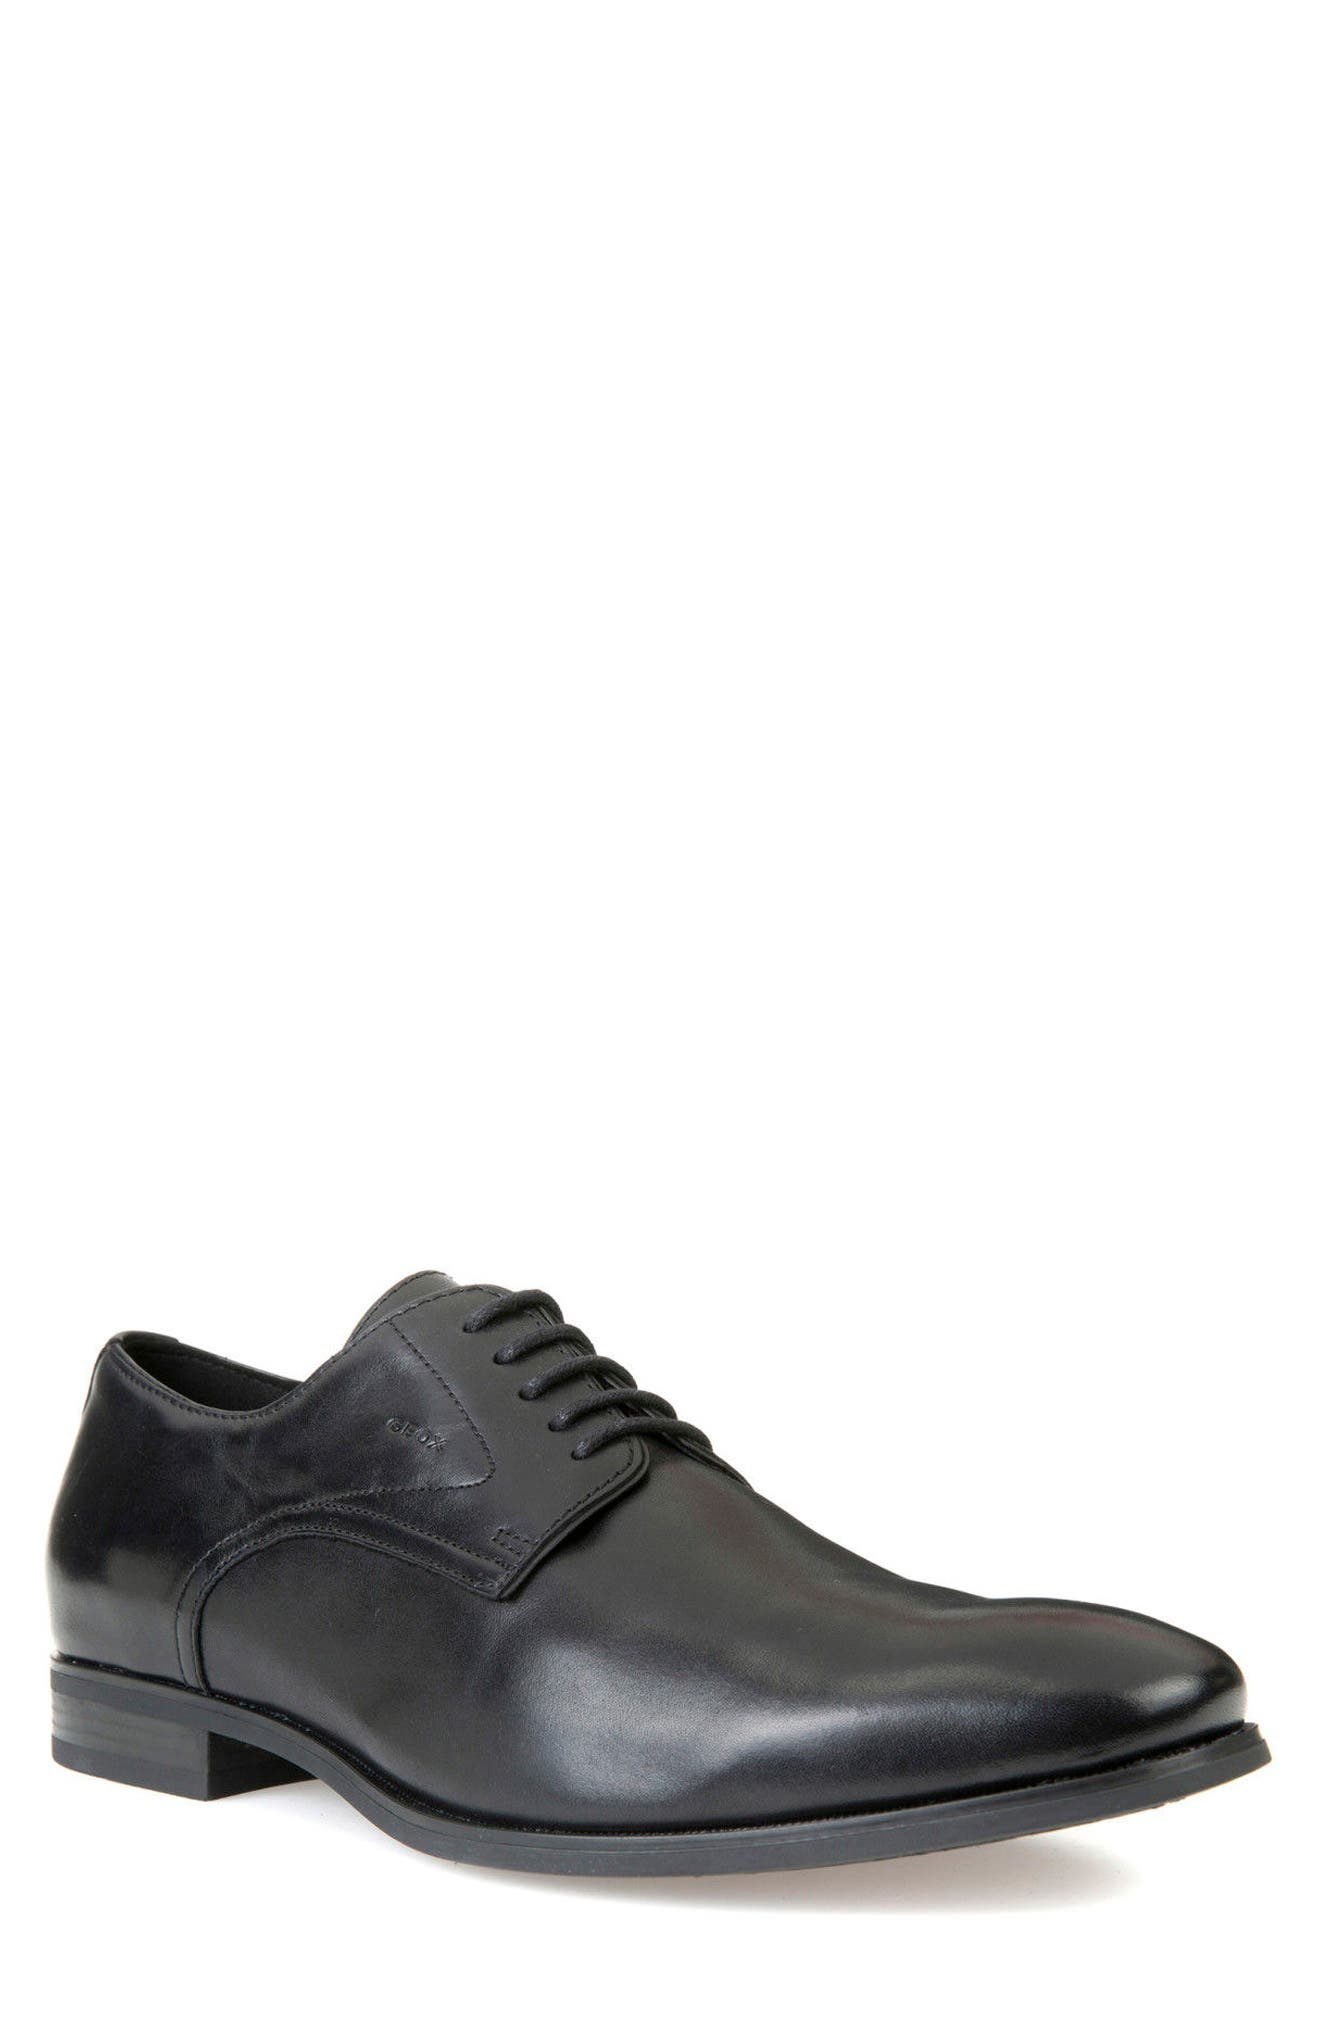 Albert 2Fit5 Plain Toe Derby,                         Main,                         color,